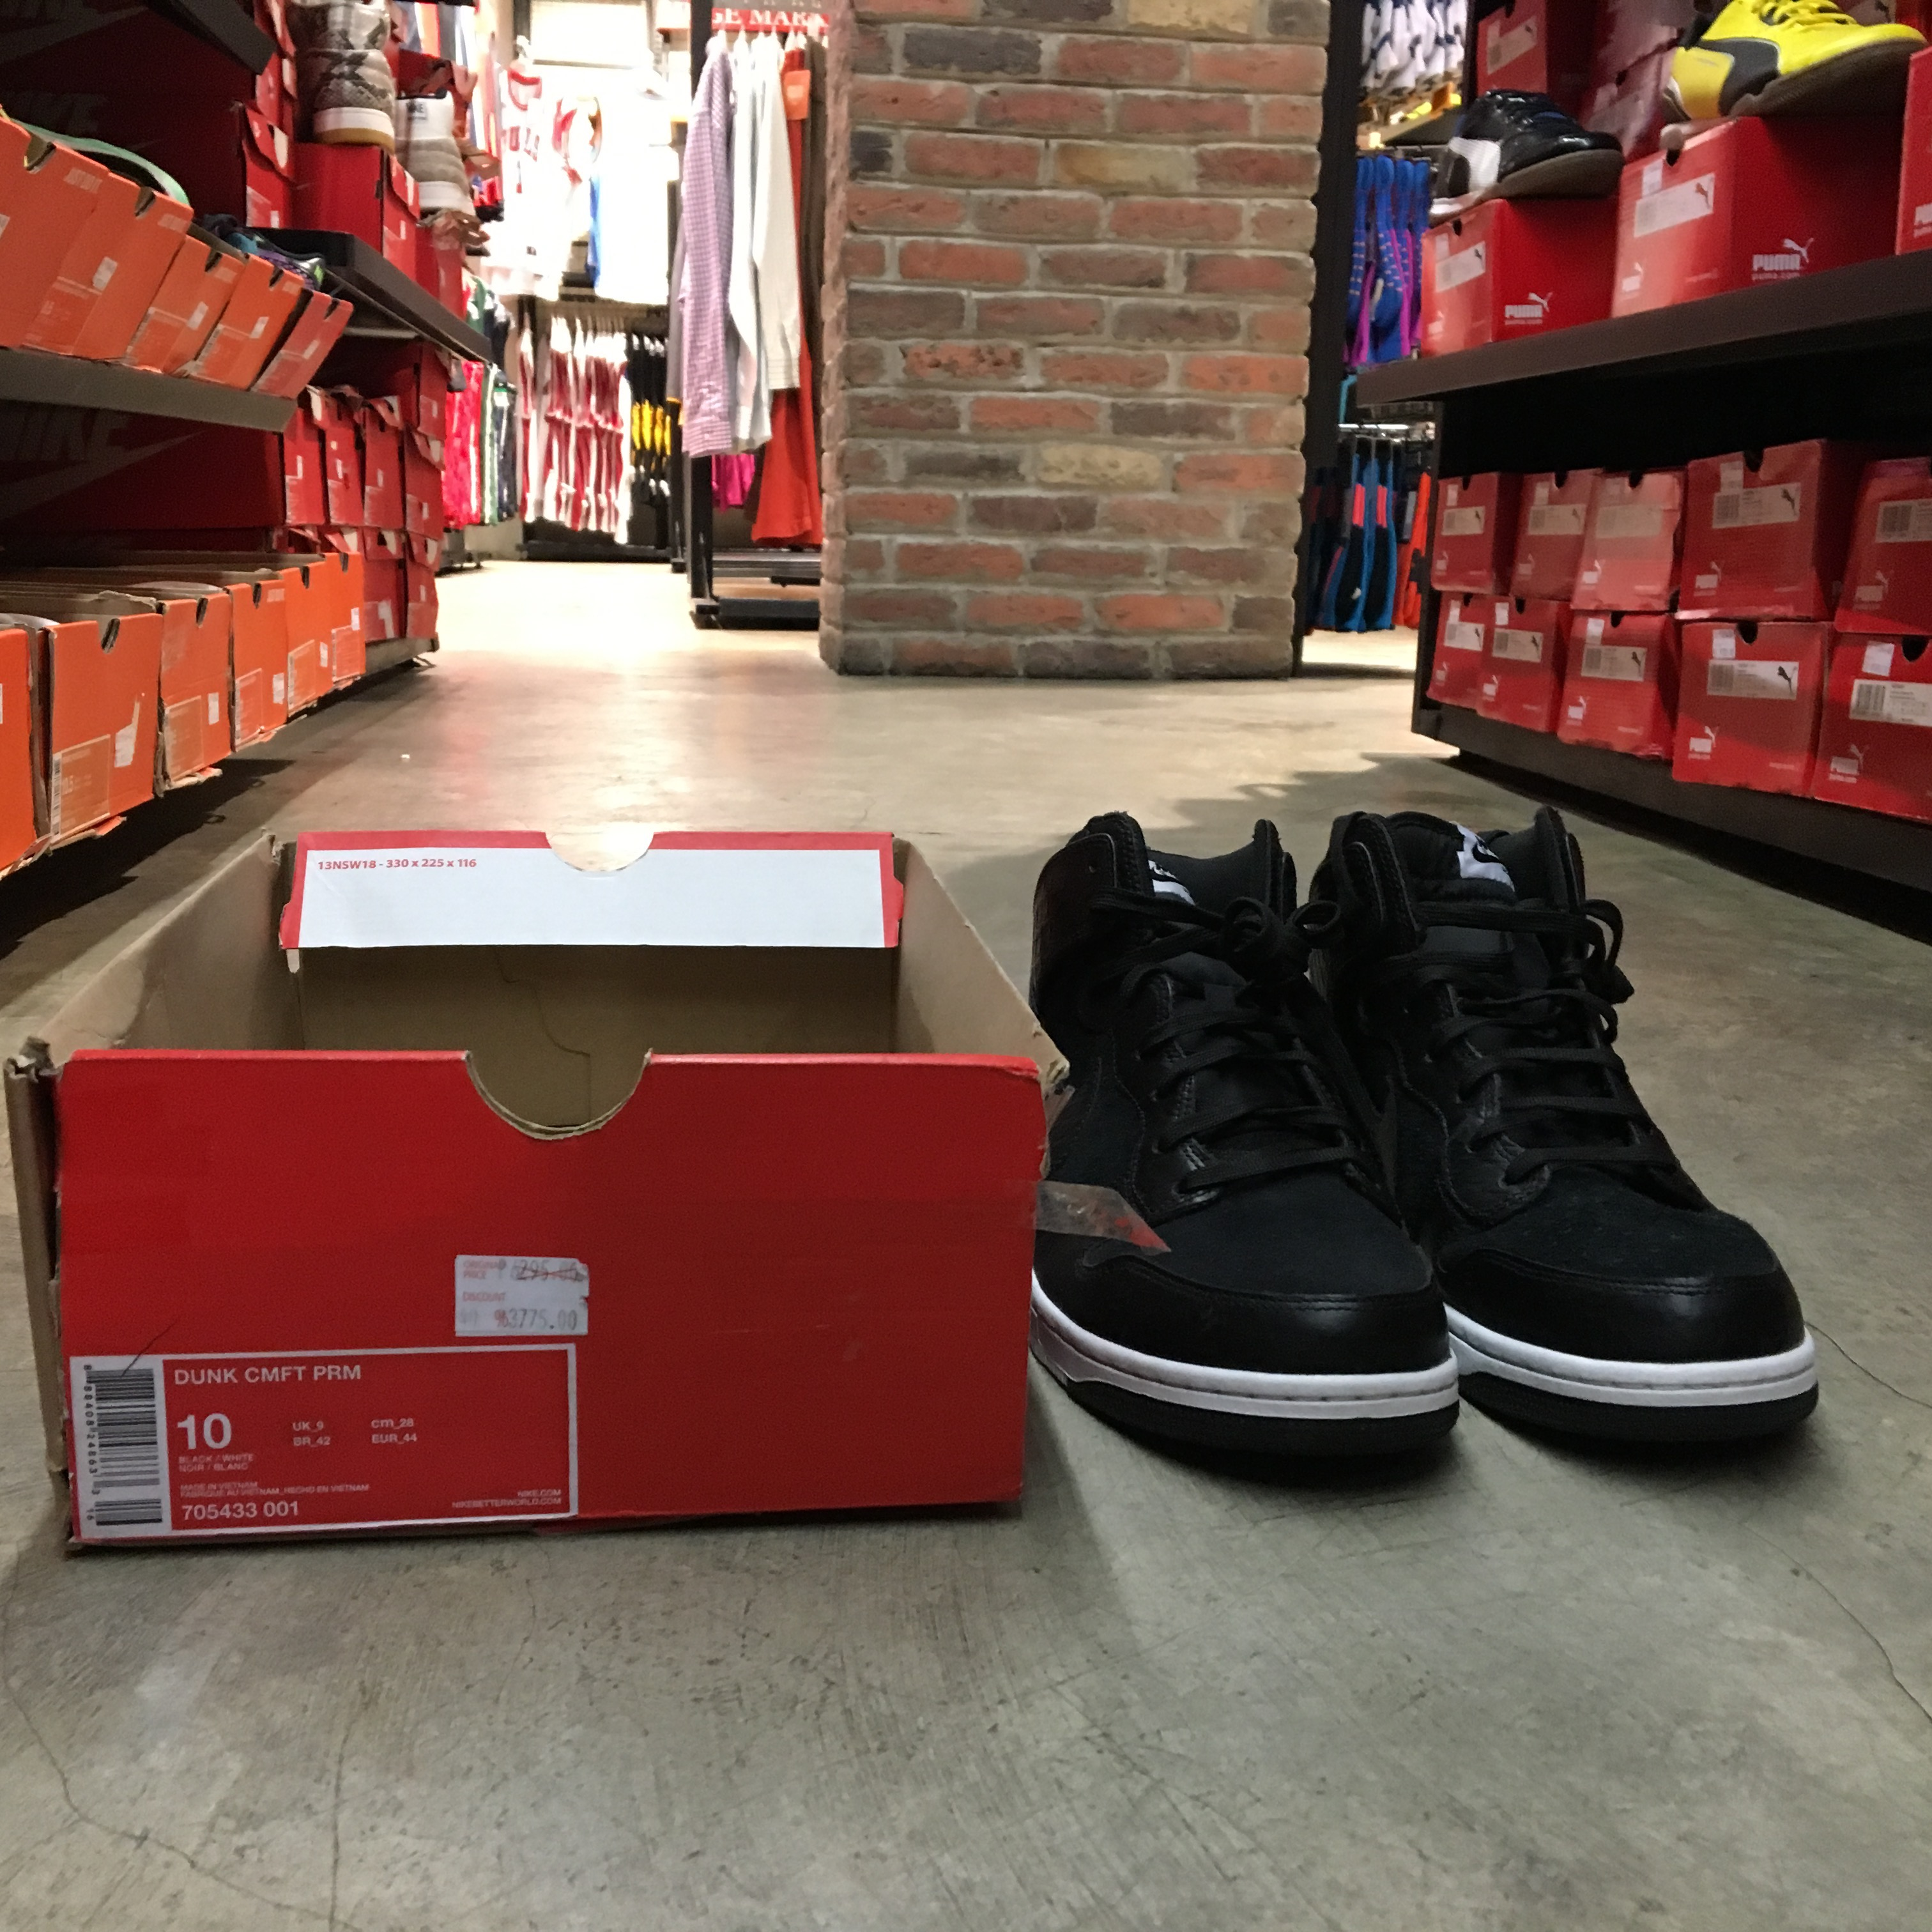 1d1b09102b4 FHM Outlet Scores  The Best Sneakers At Rucker Outlet Right Now